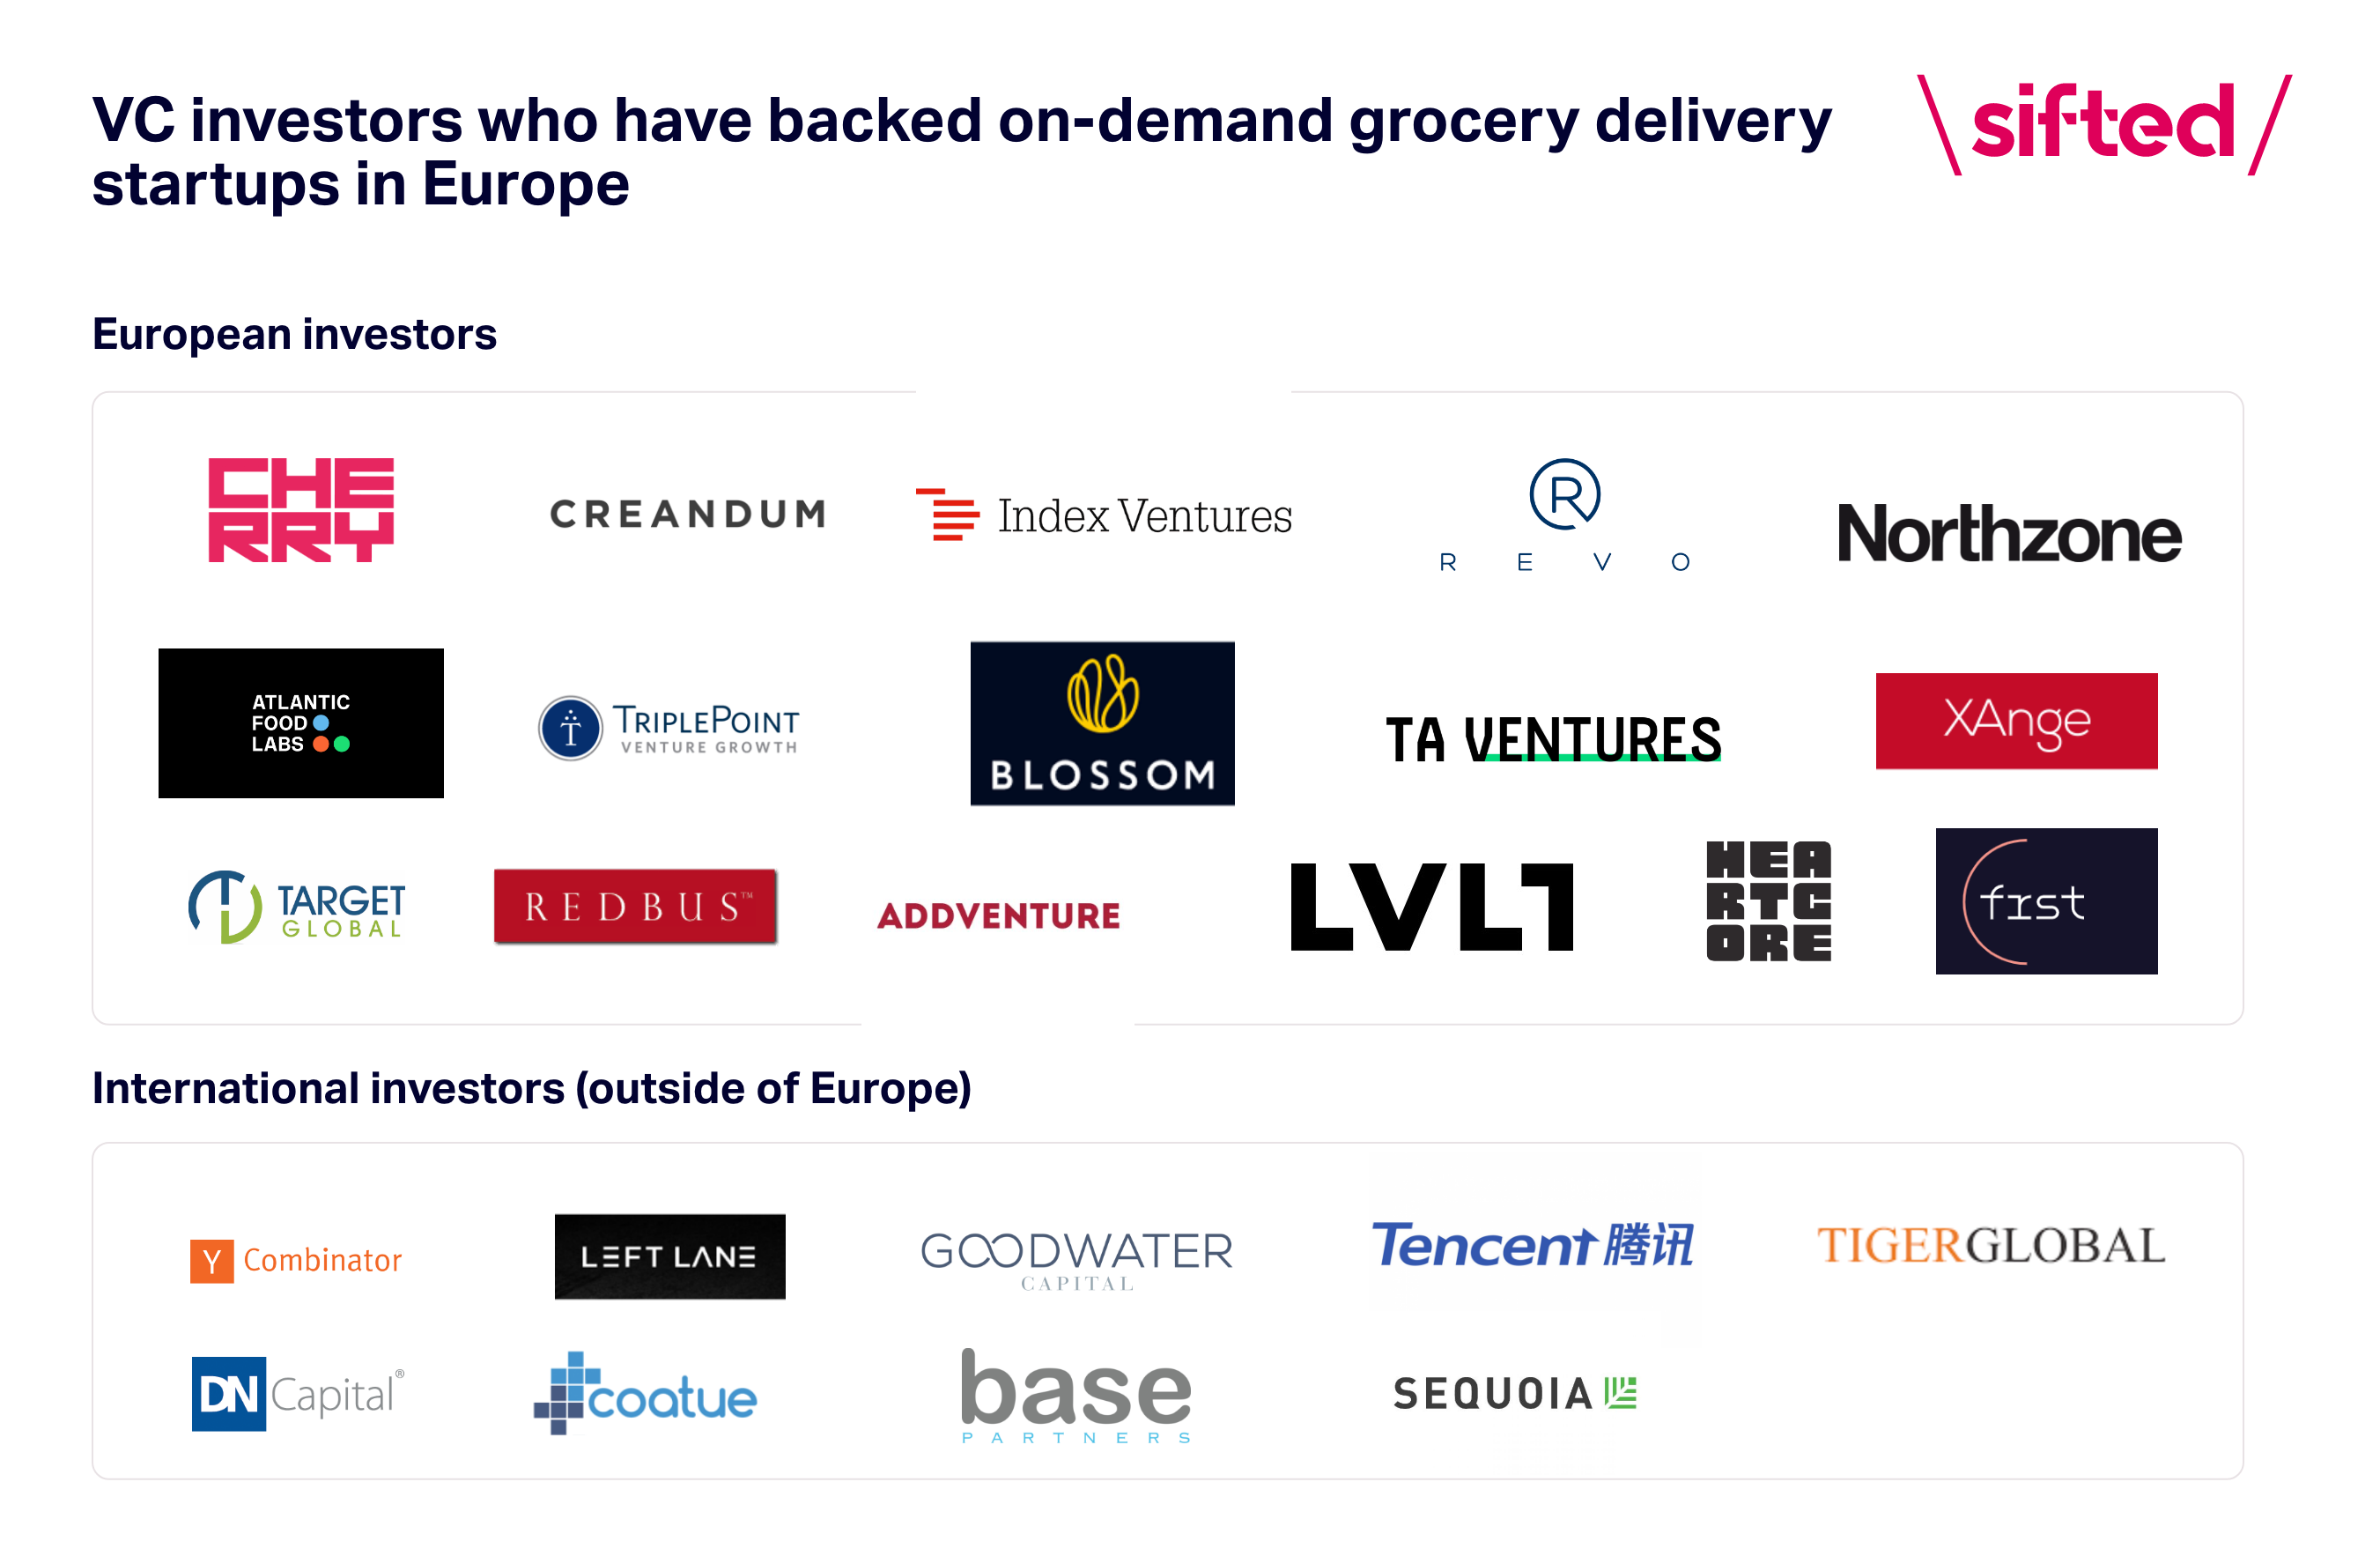 VC on-demand grocery delivery